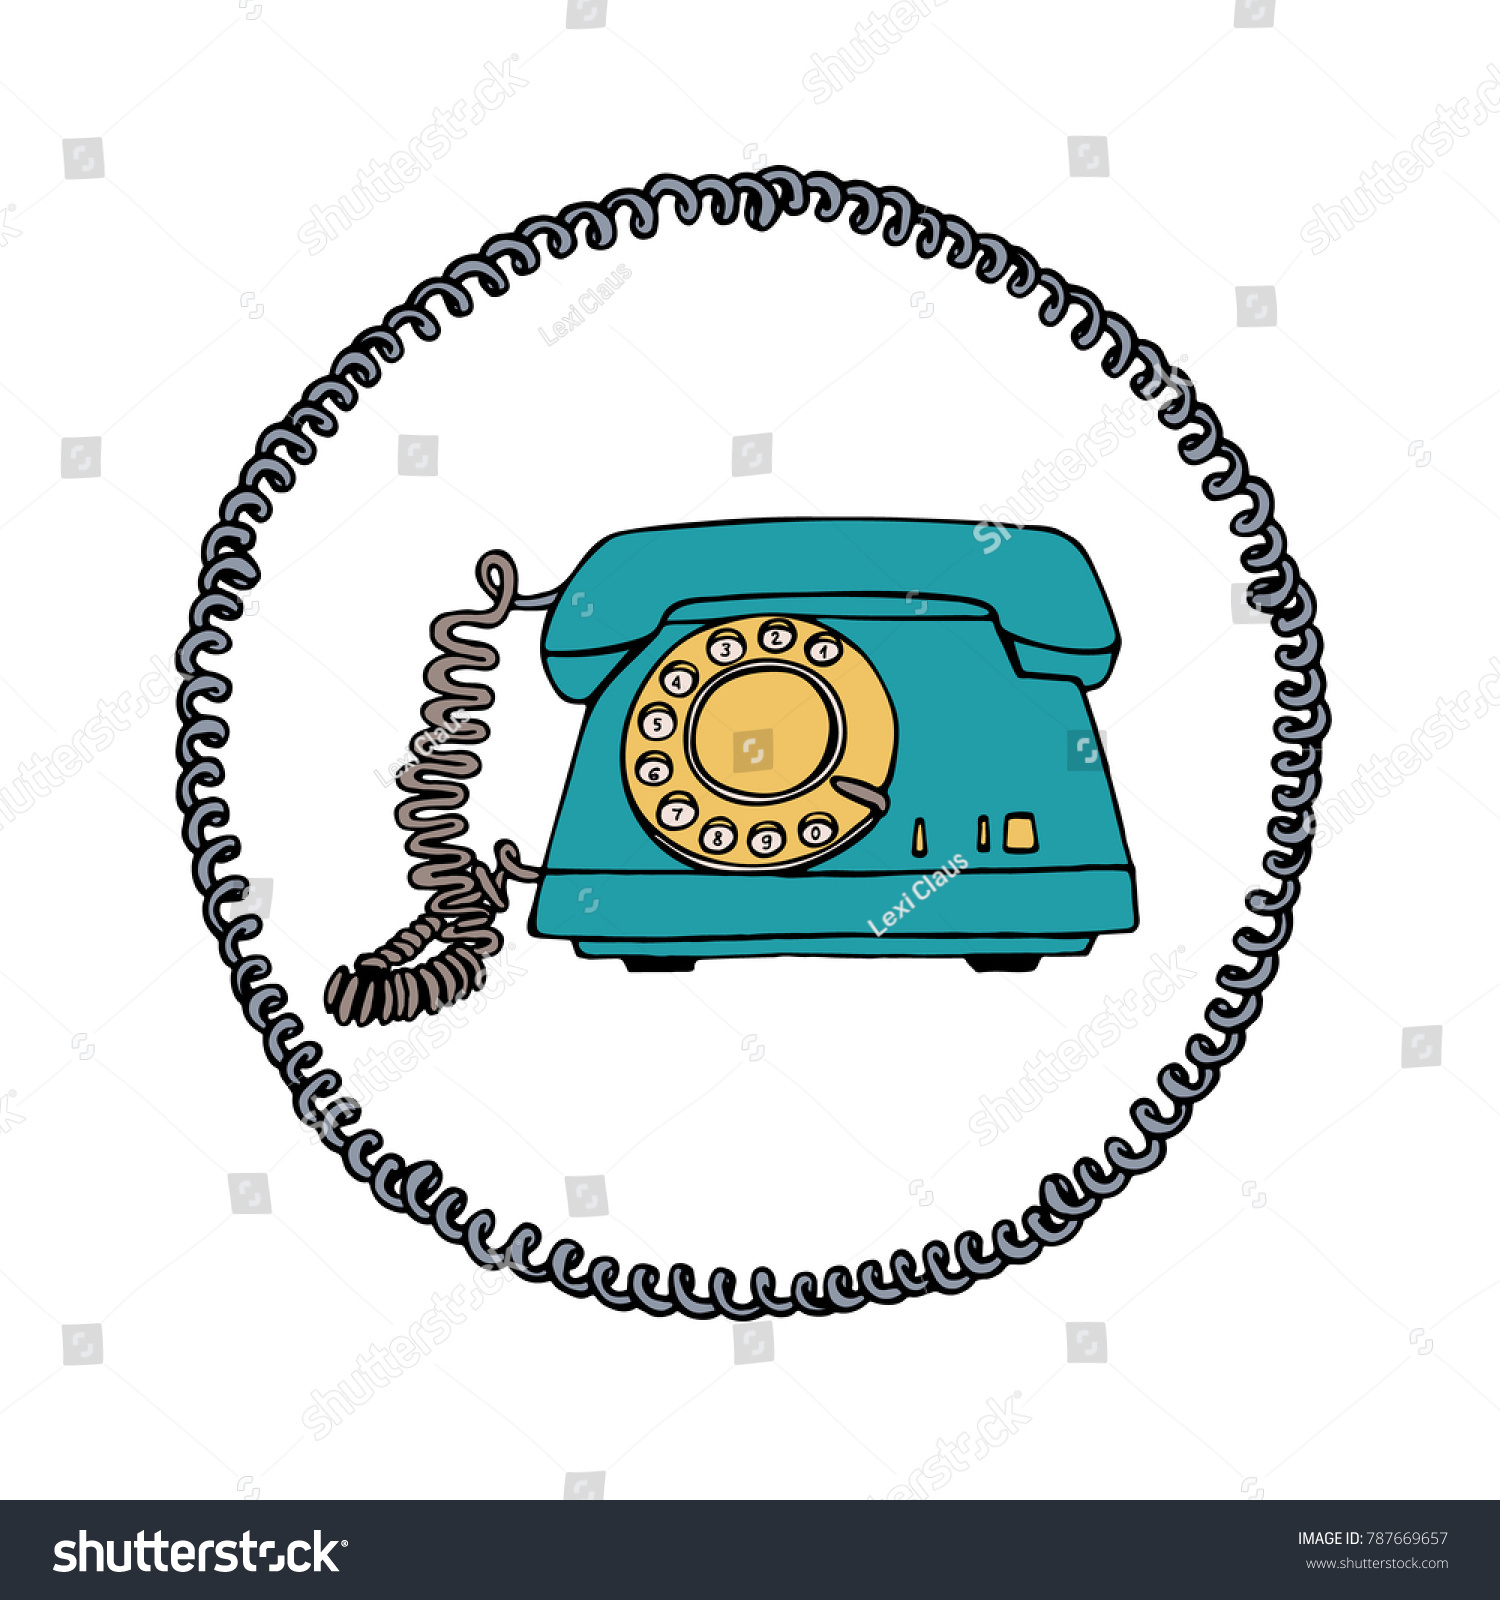 Vector Illustration Vintage Telephone Round Wire Stock Vector ...